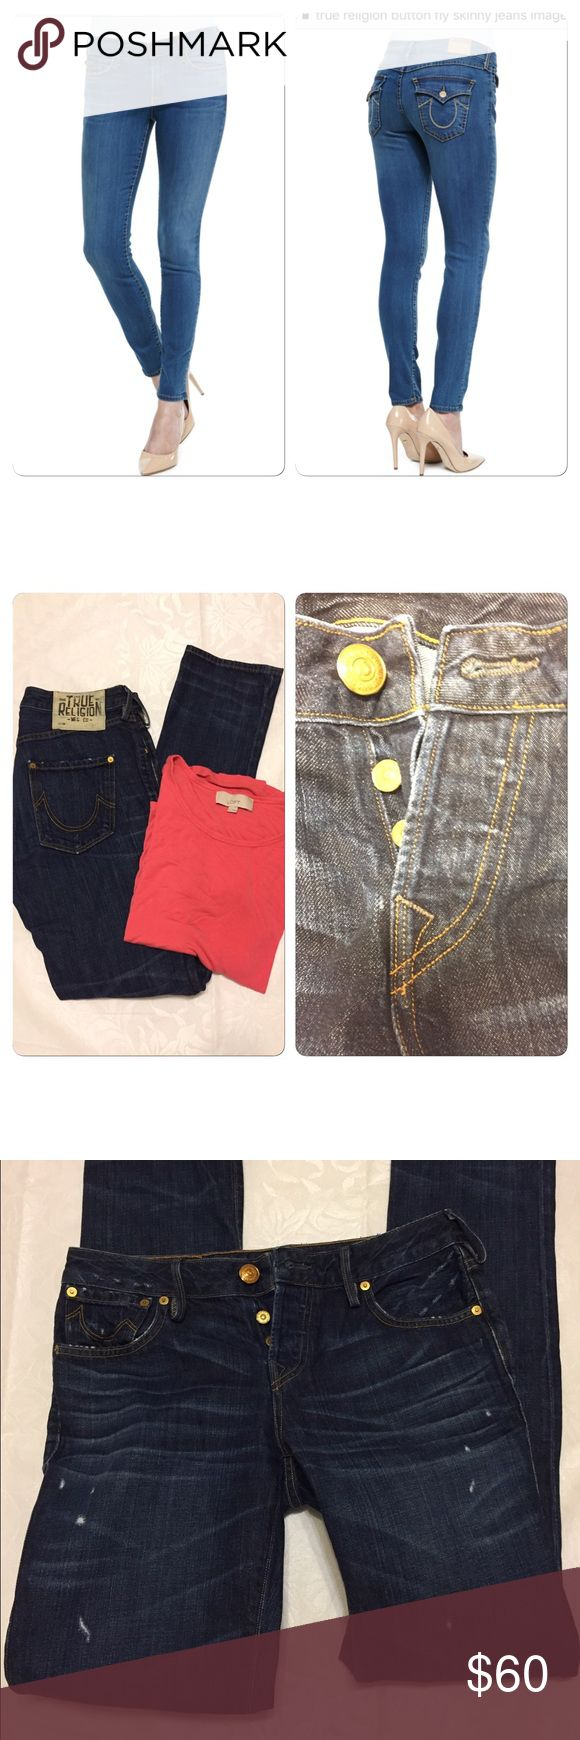 "True Religion skinny button fly jeans Perfect True Religion skinny jeans, Avery is the style, waist is 5.5"" across, inseam 35.5"" rise 8.5"" True Religion Jeans Skinny"